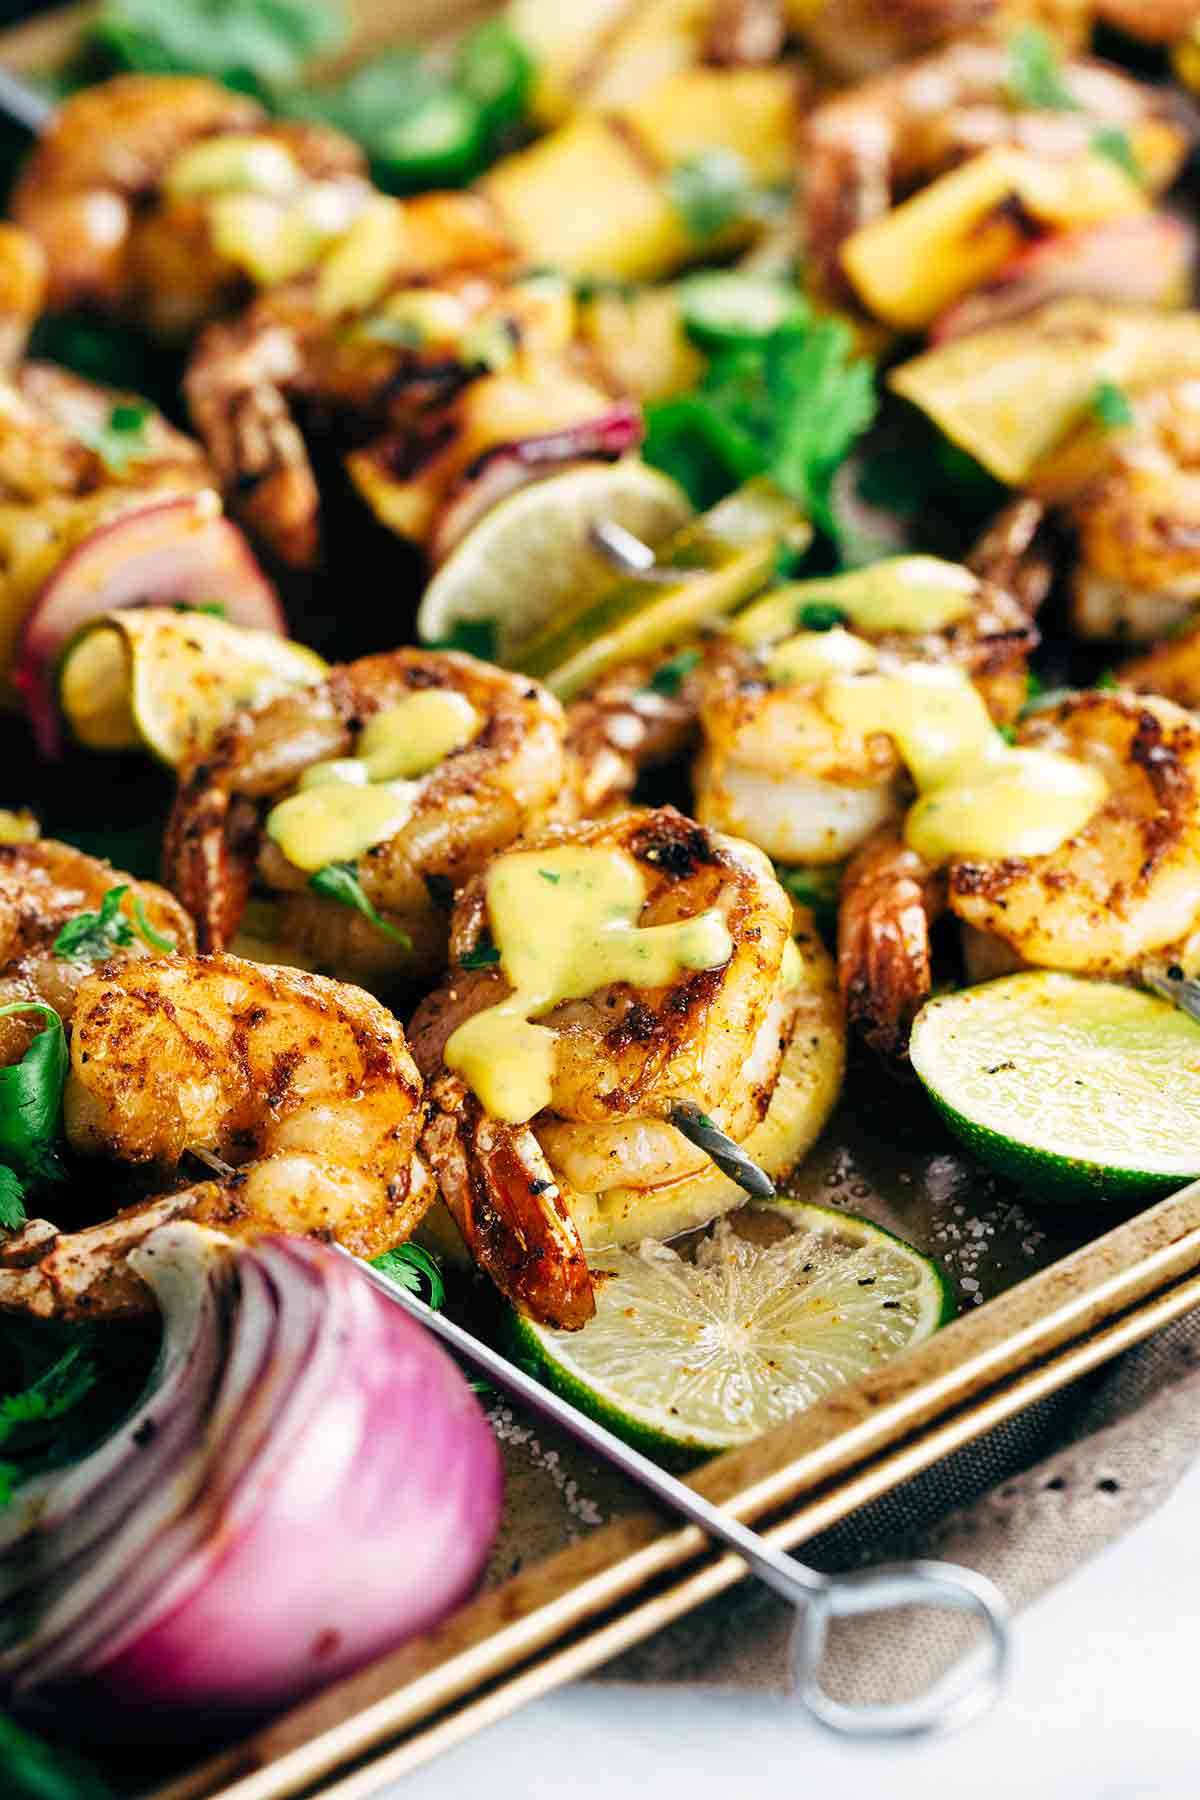 grilled-spiced-shrimp-with-pineapple-cilantro-sauce.jpg